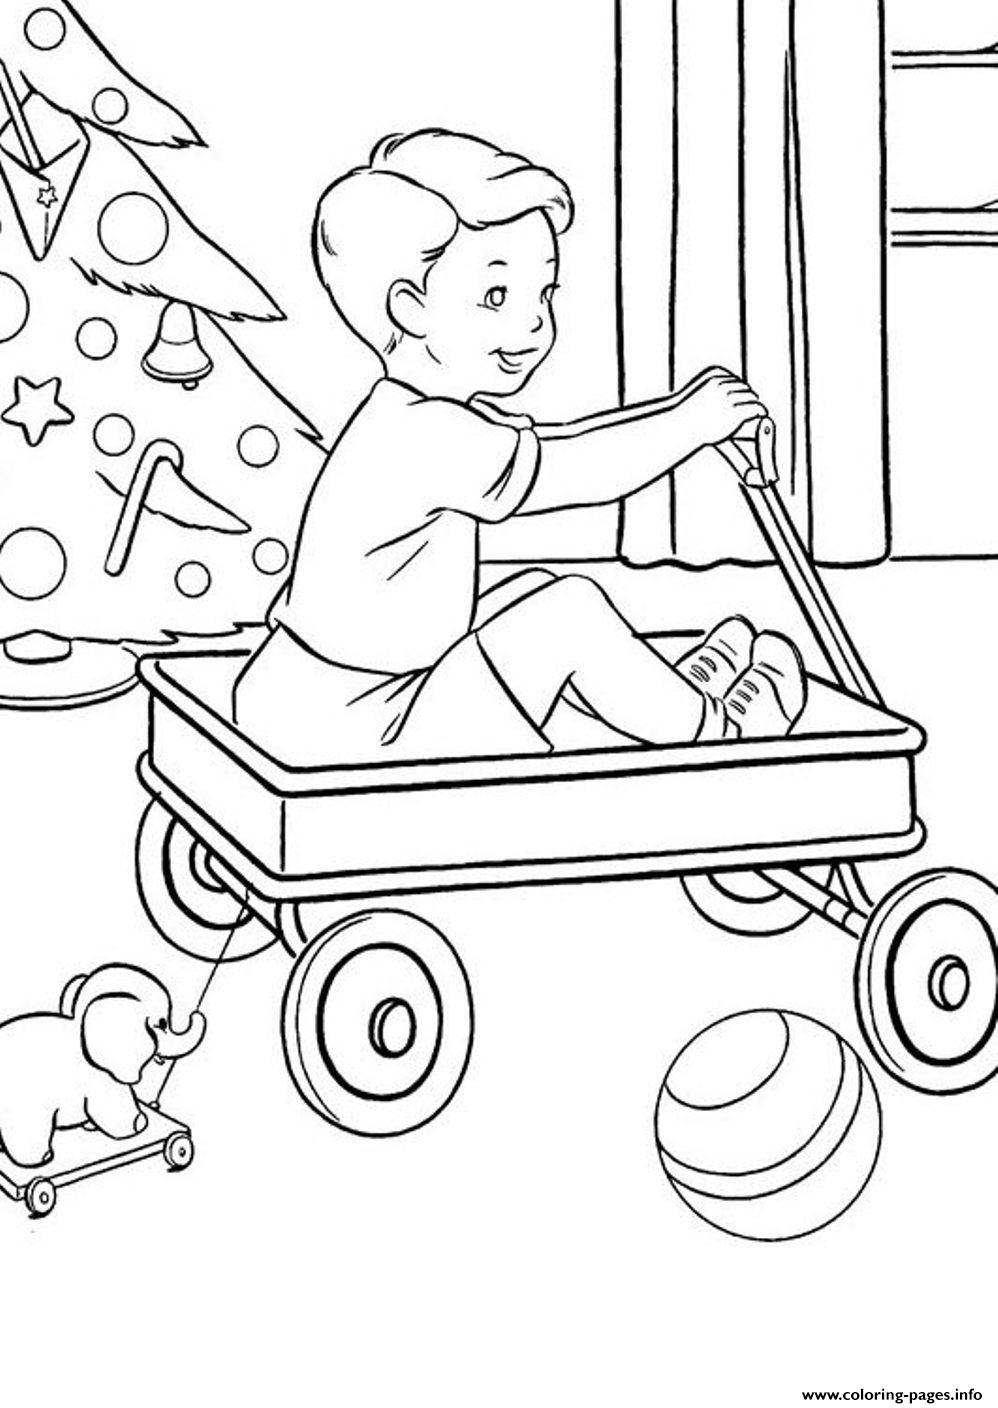 Christmas Present For Little Boyd123 Coloring Pages Printable